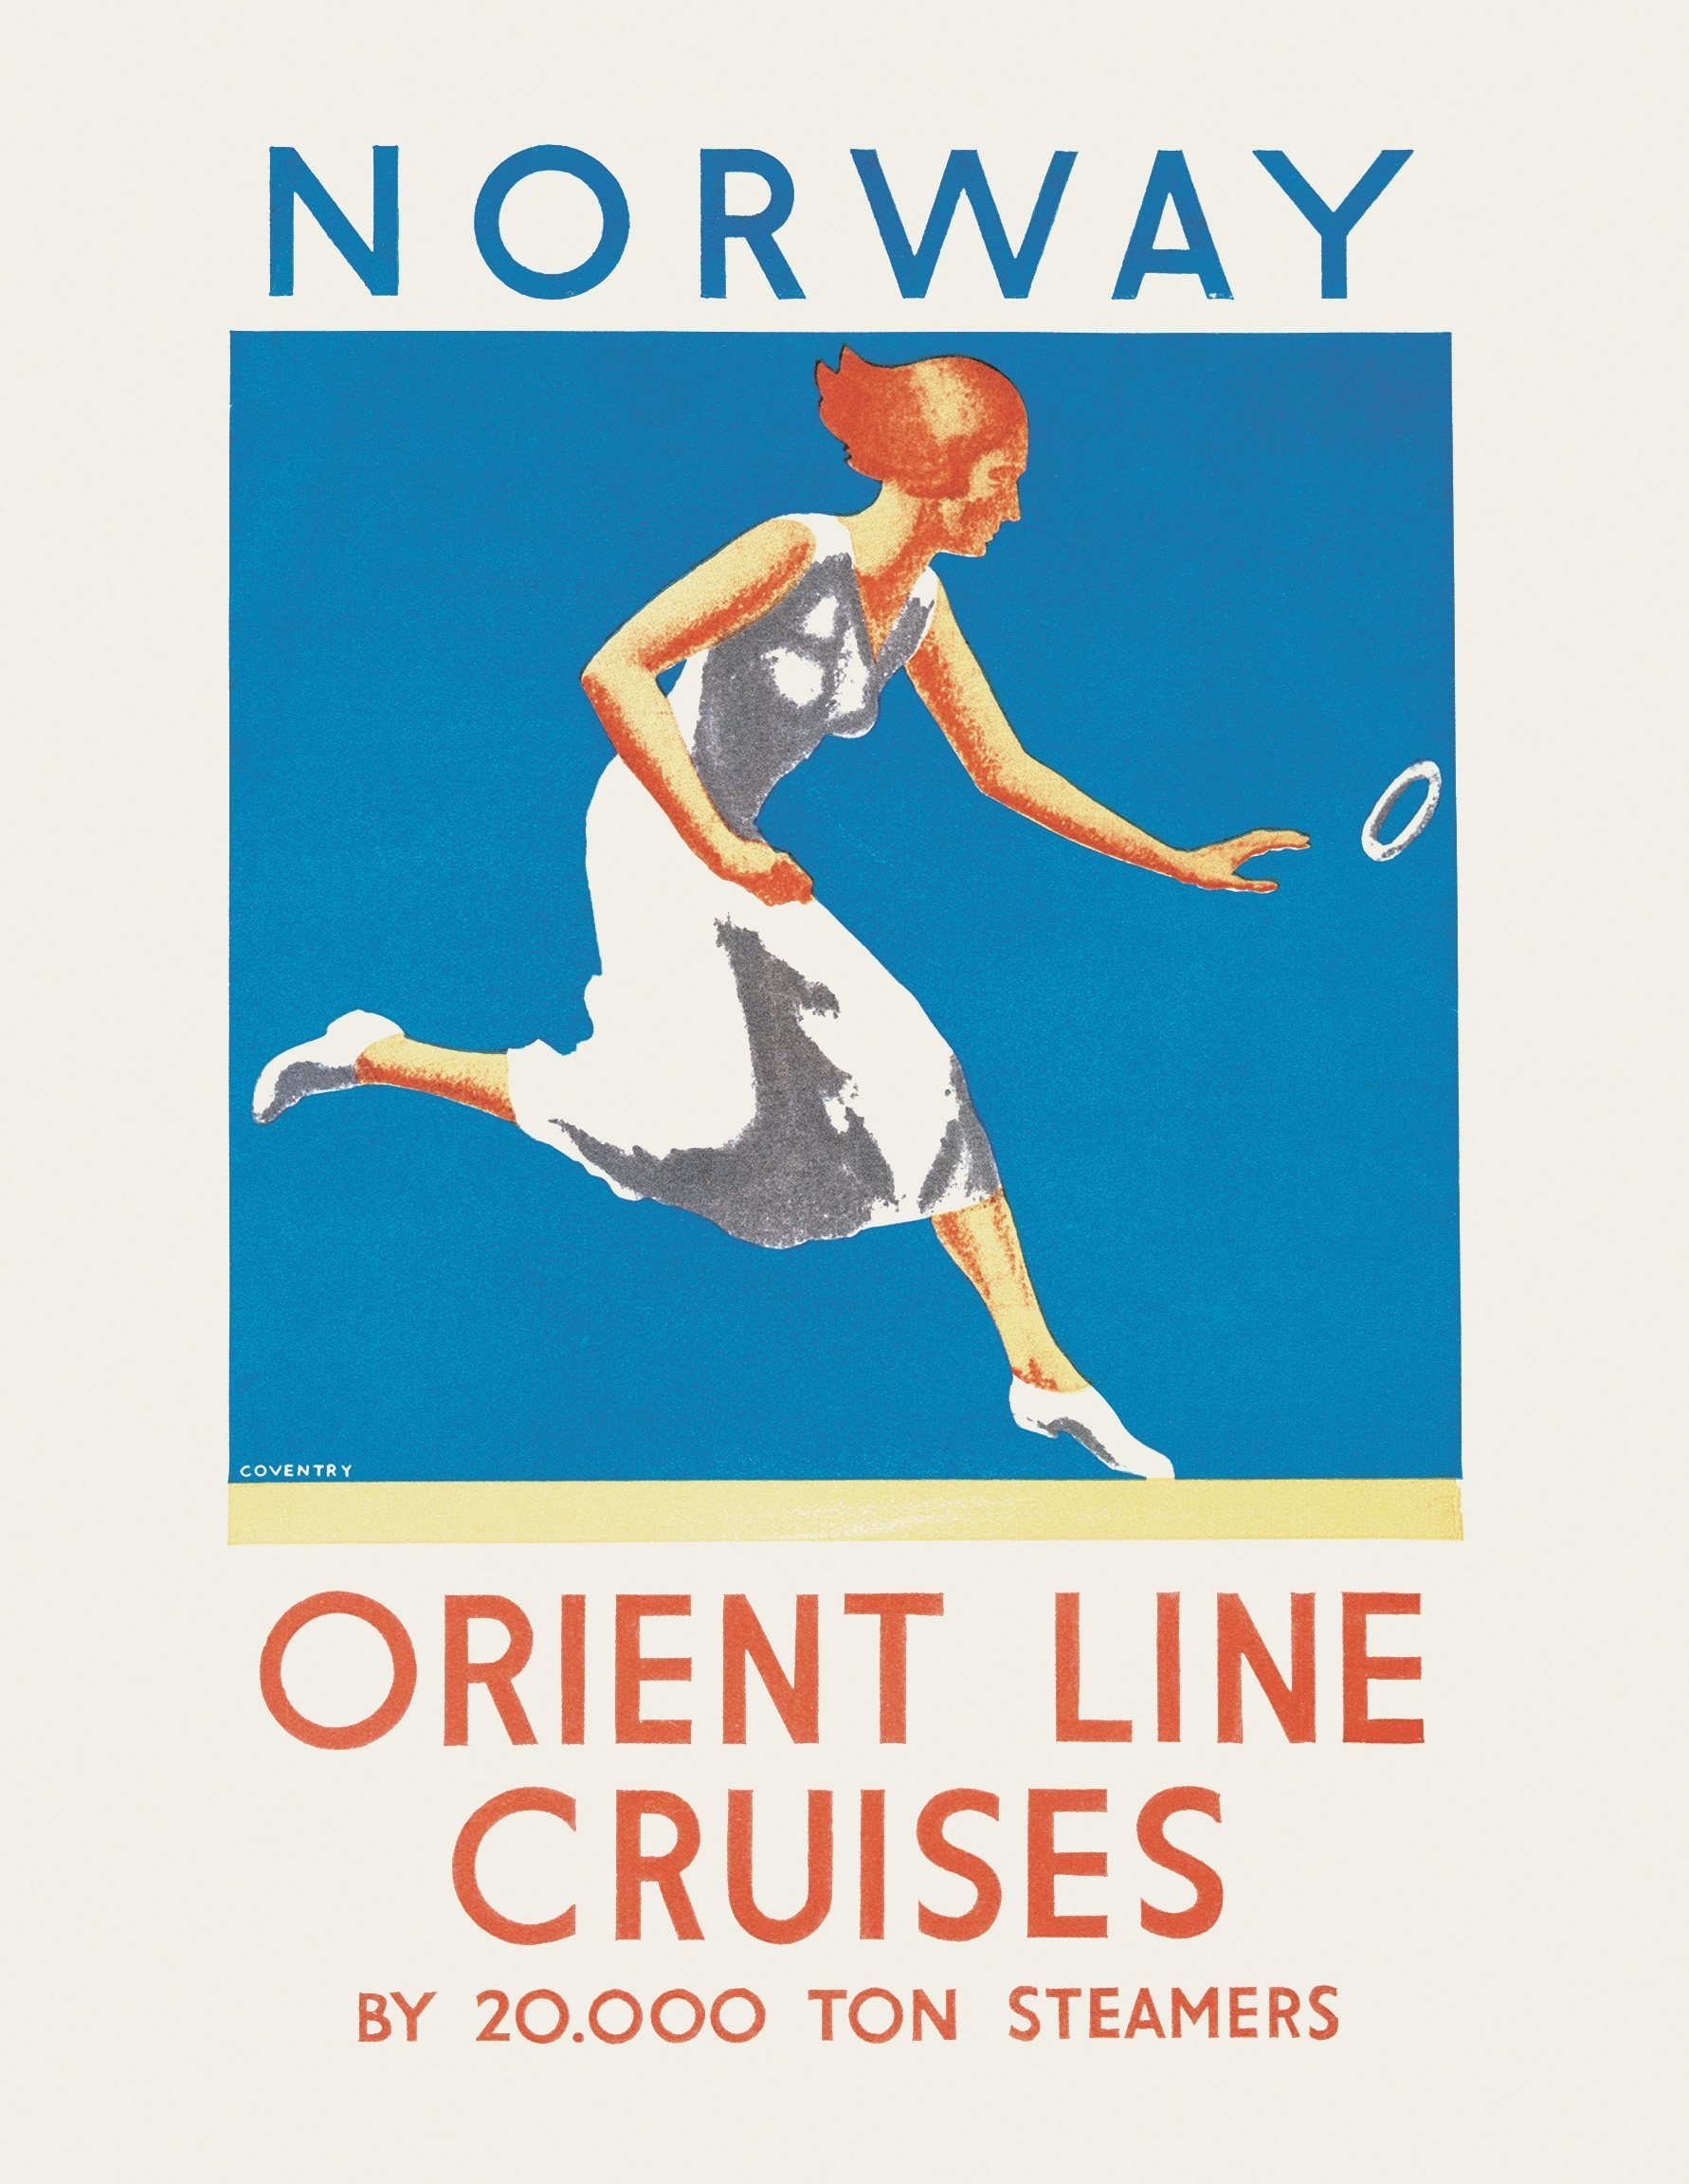 brochure for cruises to Norway on Orontes and Orford, printed in 1933